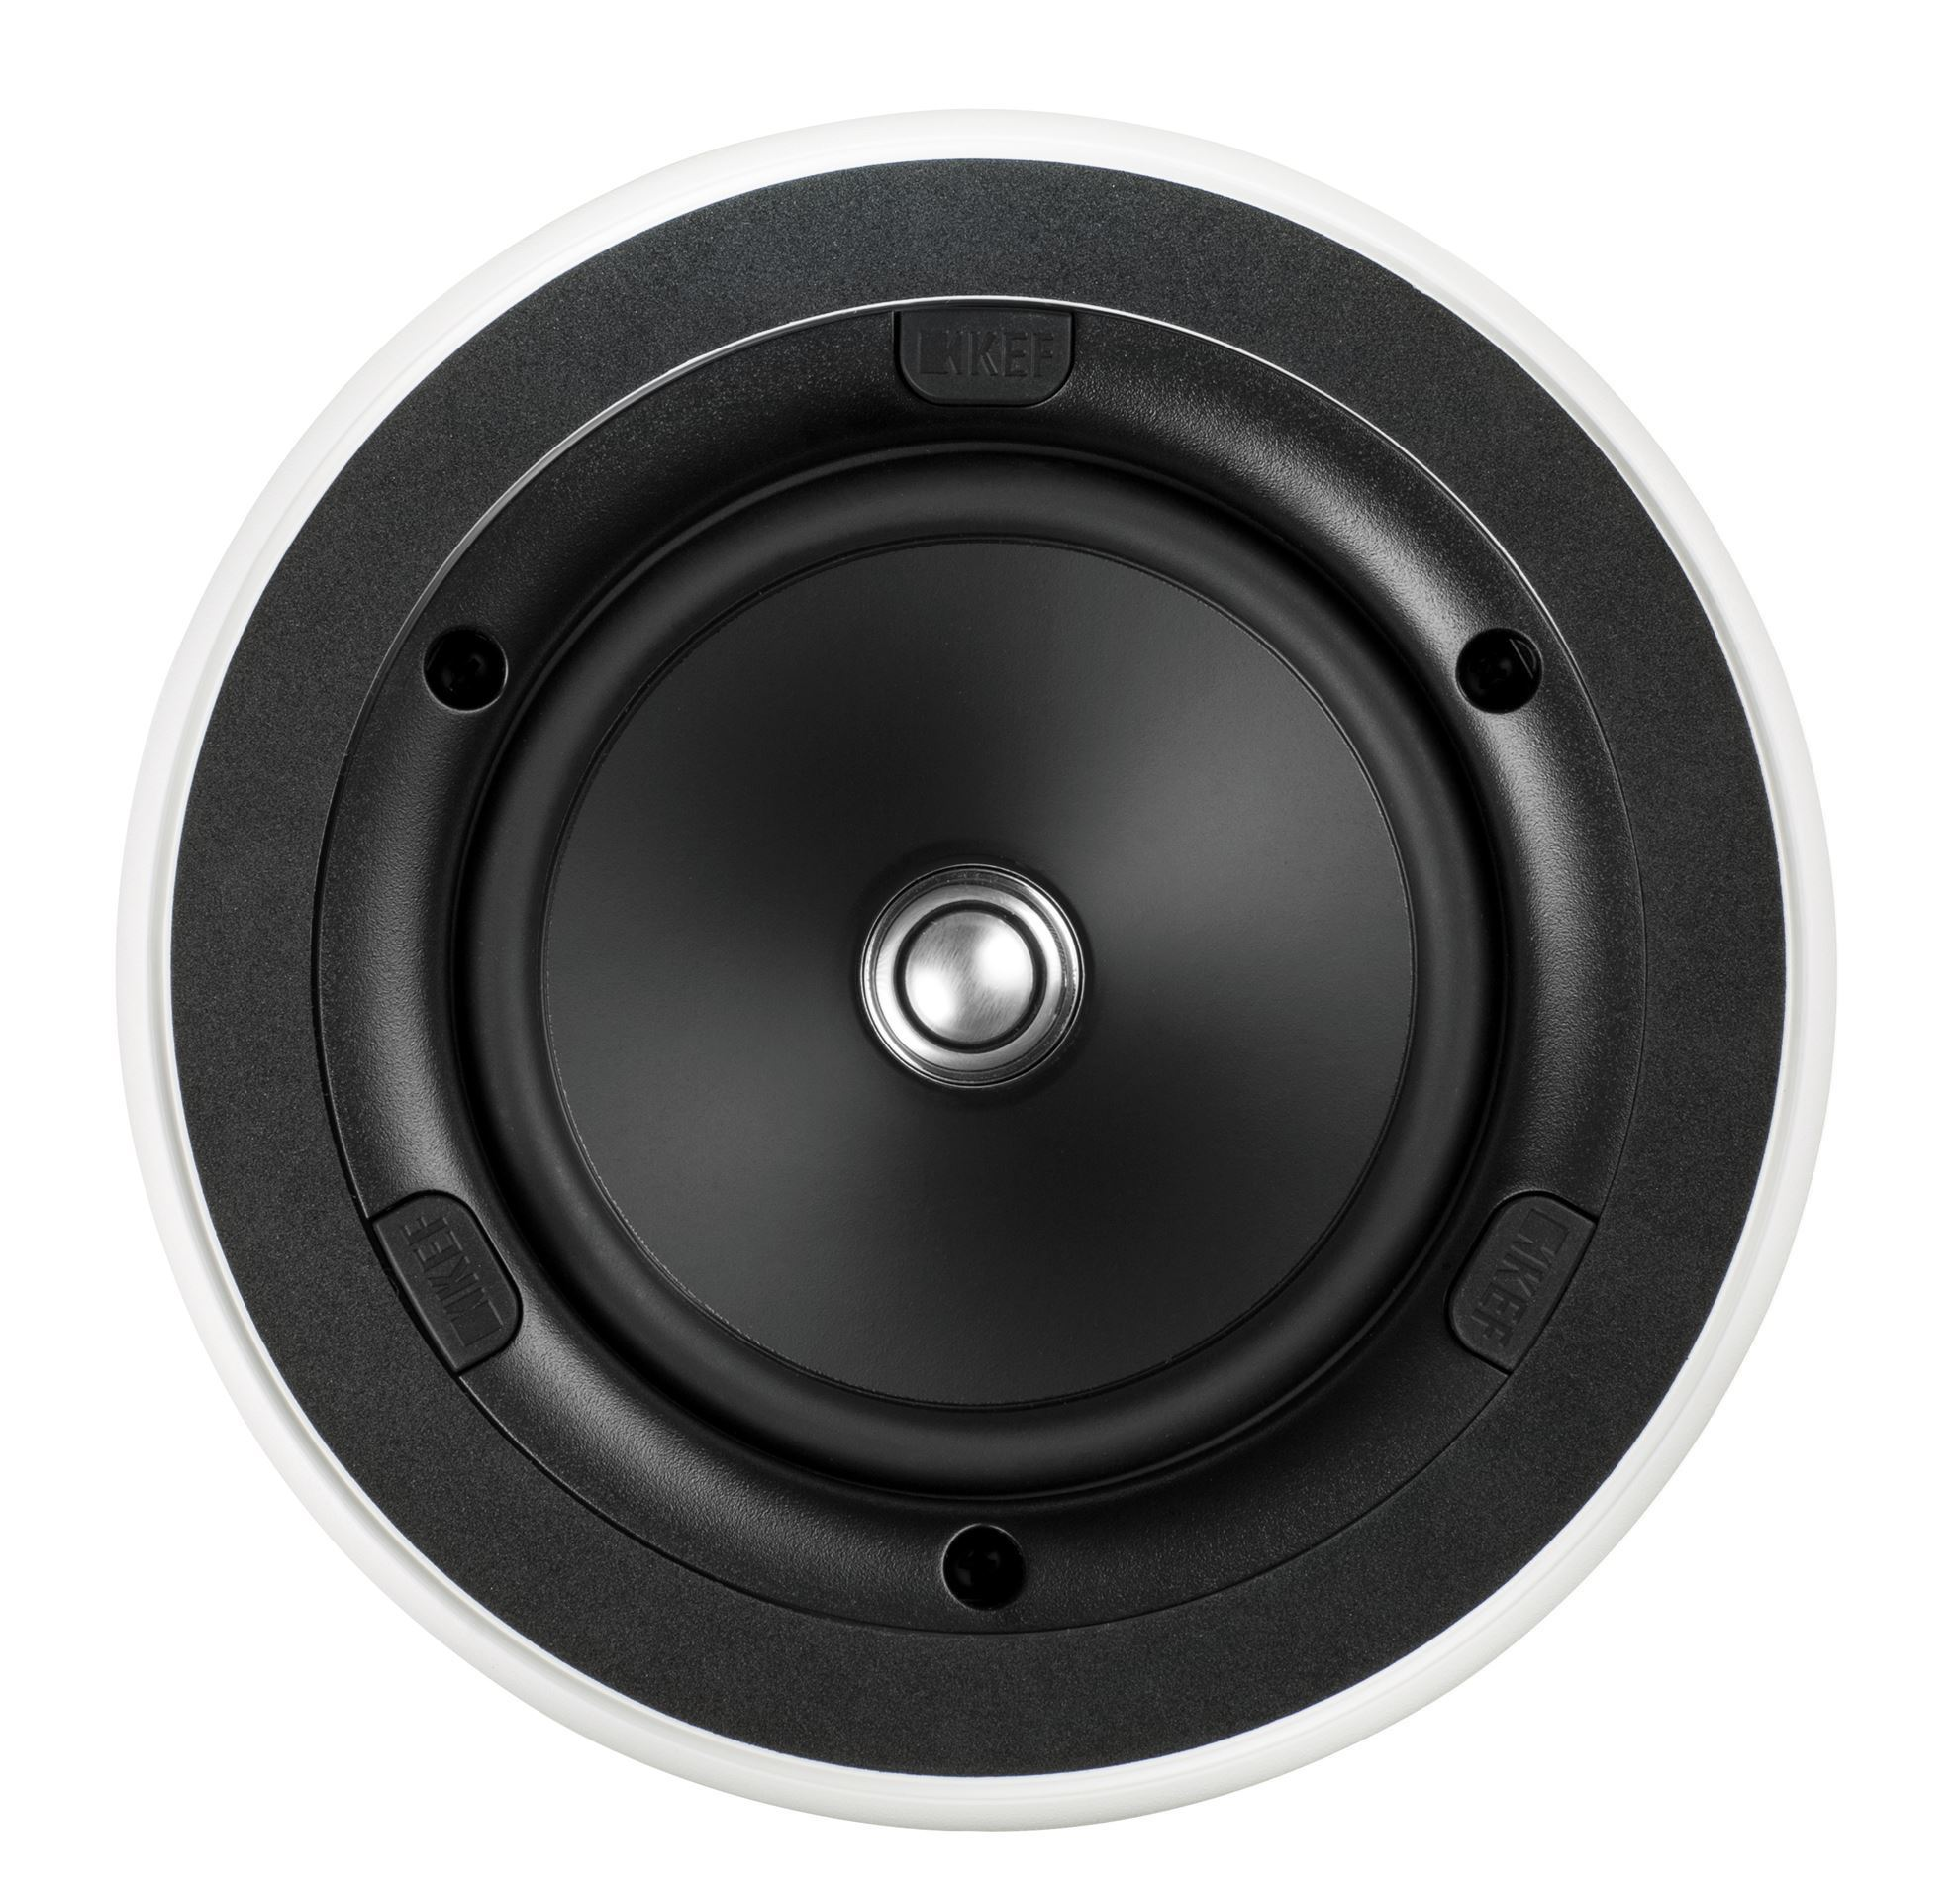 Wiring Speakers In Series Home